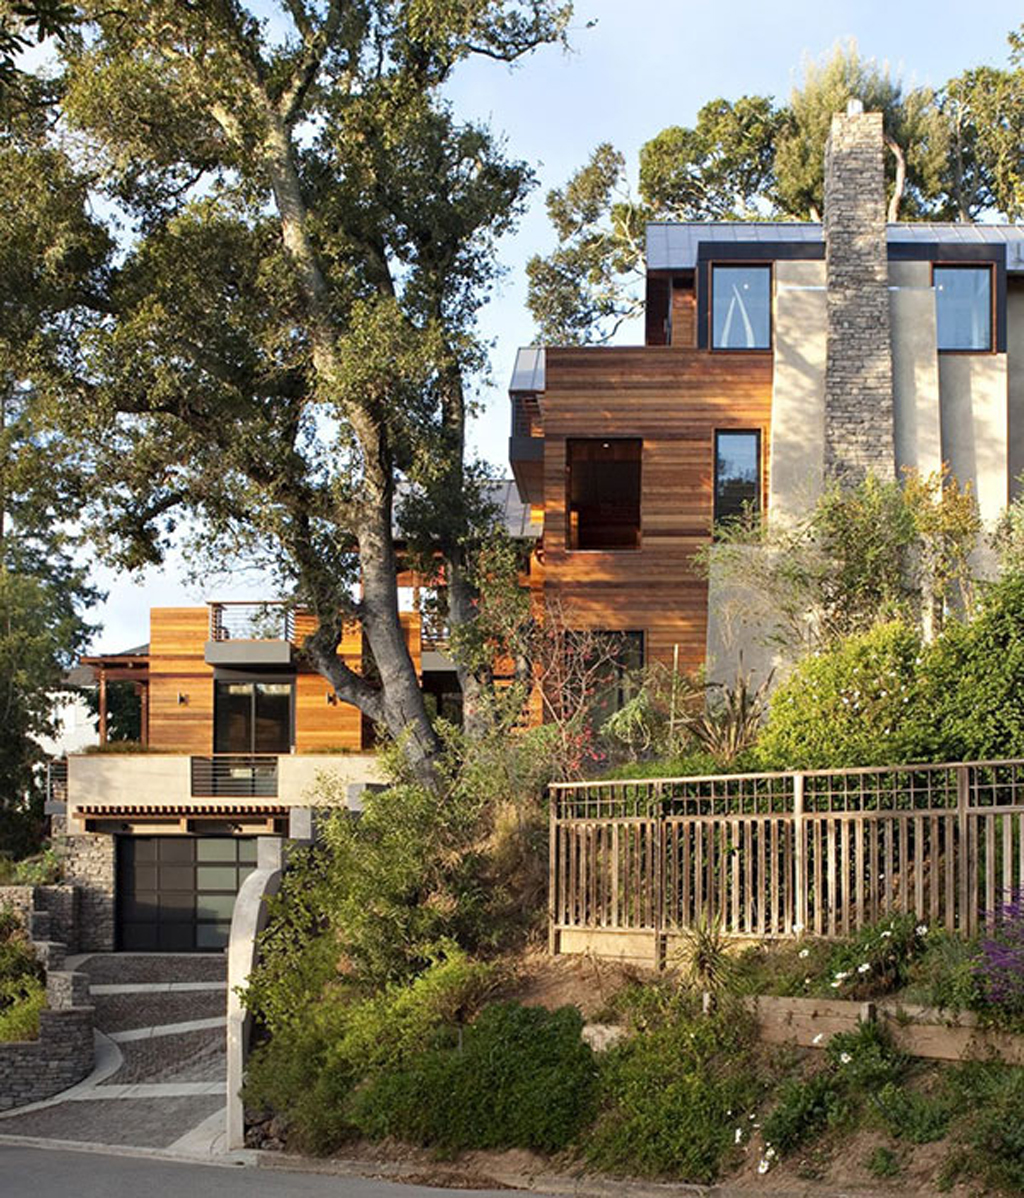 Awesome wooden home designs with hillside inspirations for Hillside home designs plans